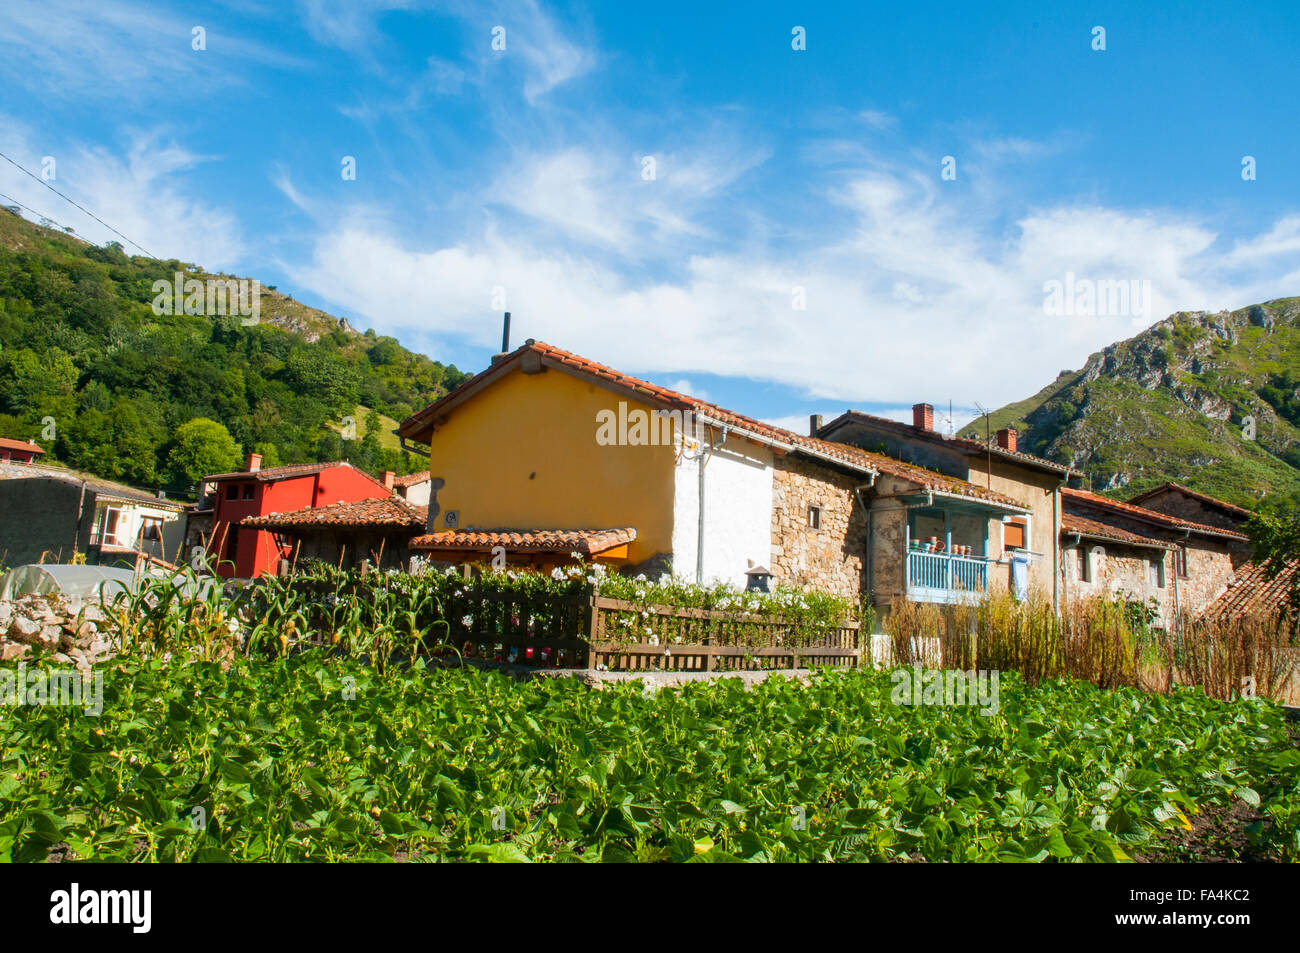 Market garden and houses. Espinaredo, Asturias, Spain. - Stock Image